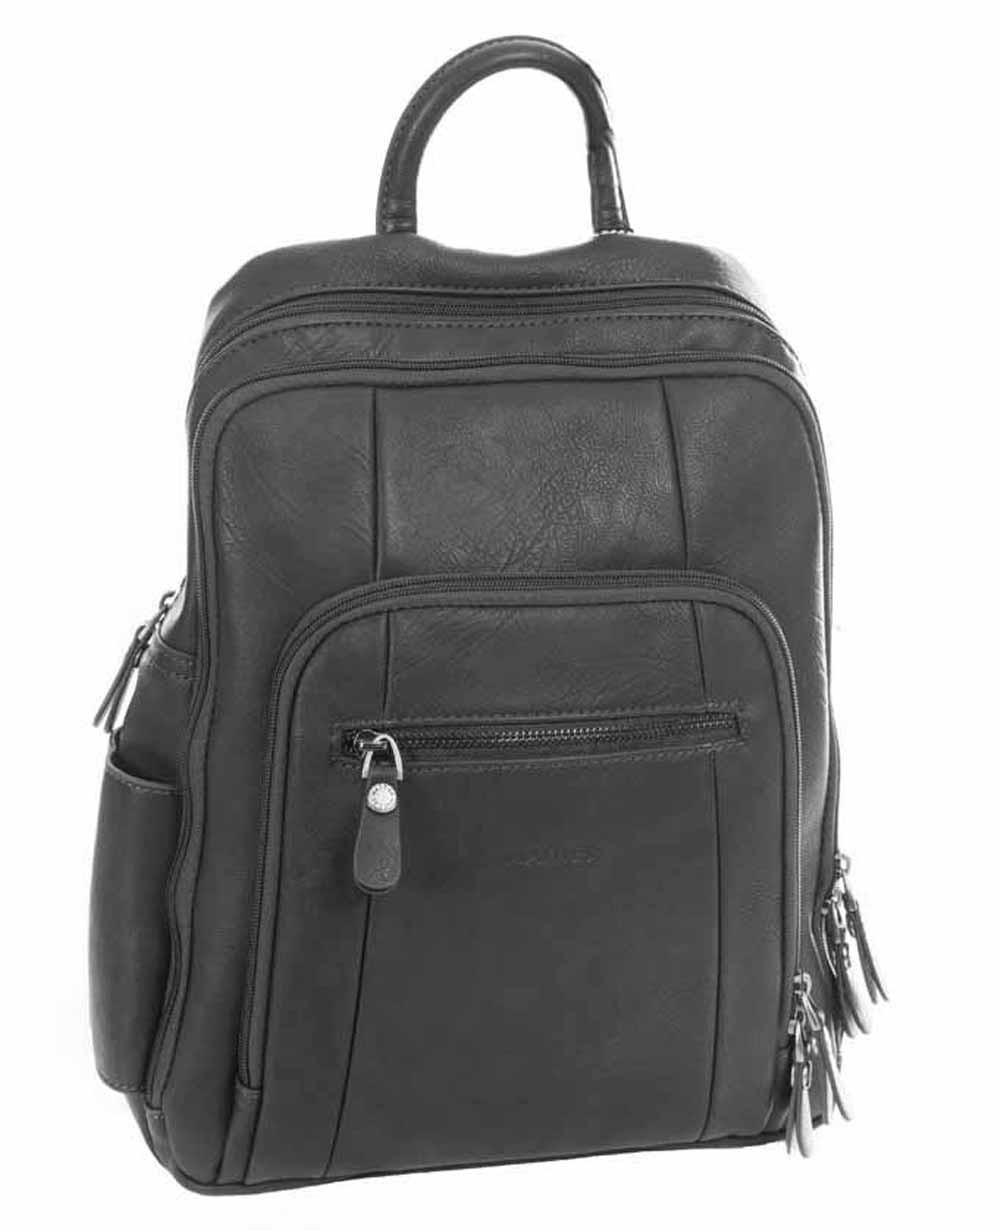 Matties Bags Mochila tablet Negra